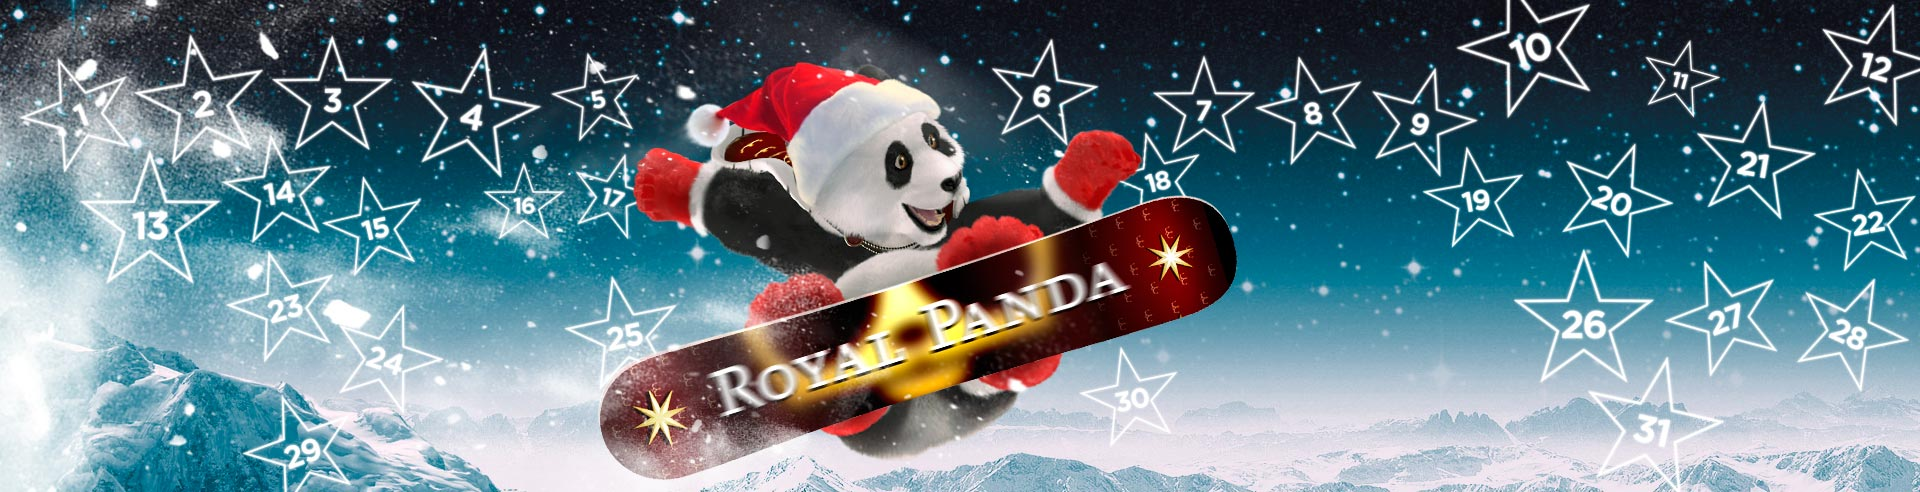 royal-panda-on-snowboard